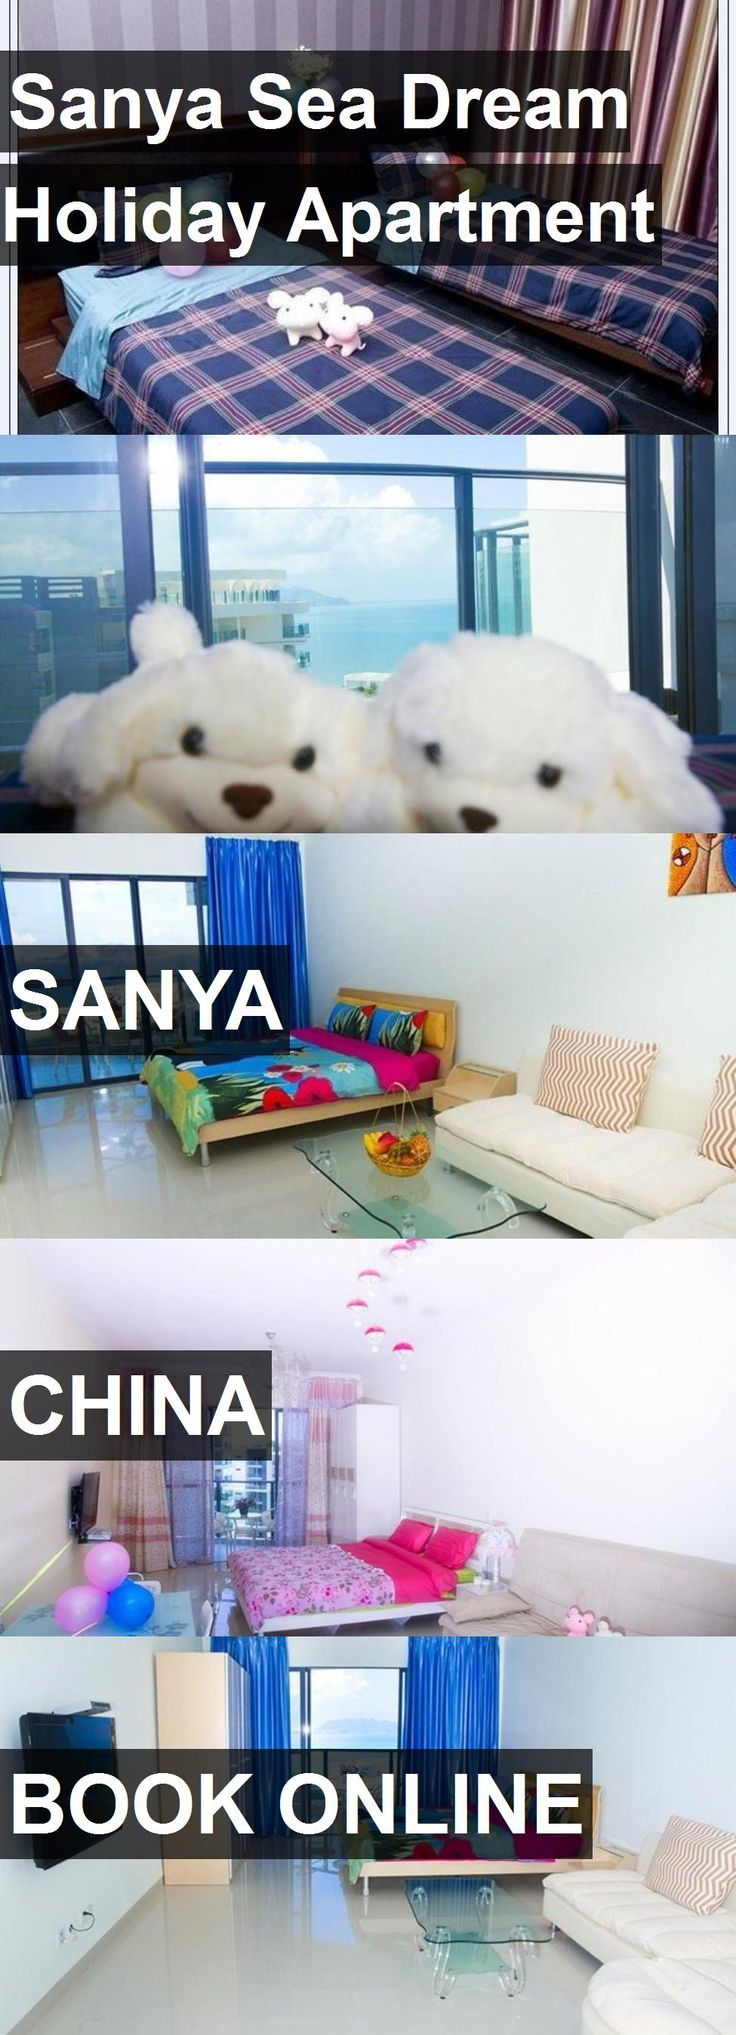 Hotel Sanya Sea Dream Holiday Apartment in Sanya, China. For more information, photos, reviews and best prices please follow the link. #China #Sanya #SanyaSeaDreamHolidayApartment #hotel #travel #vacation